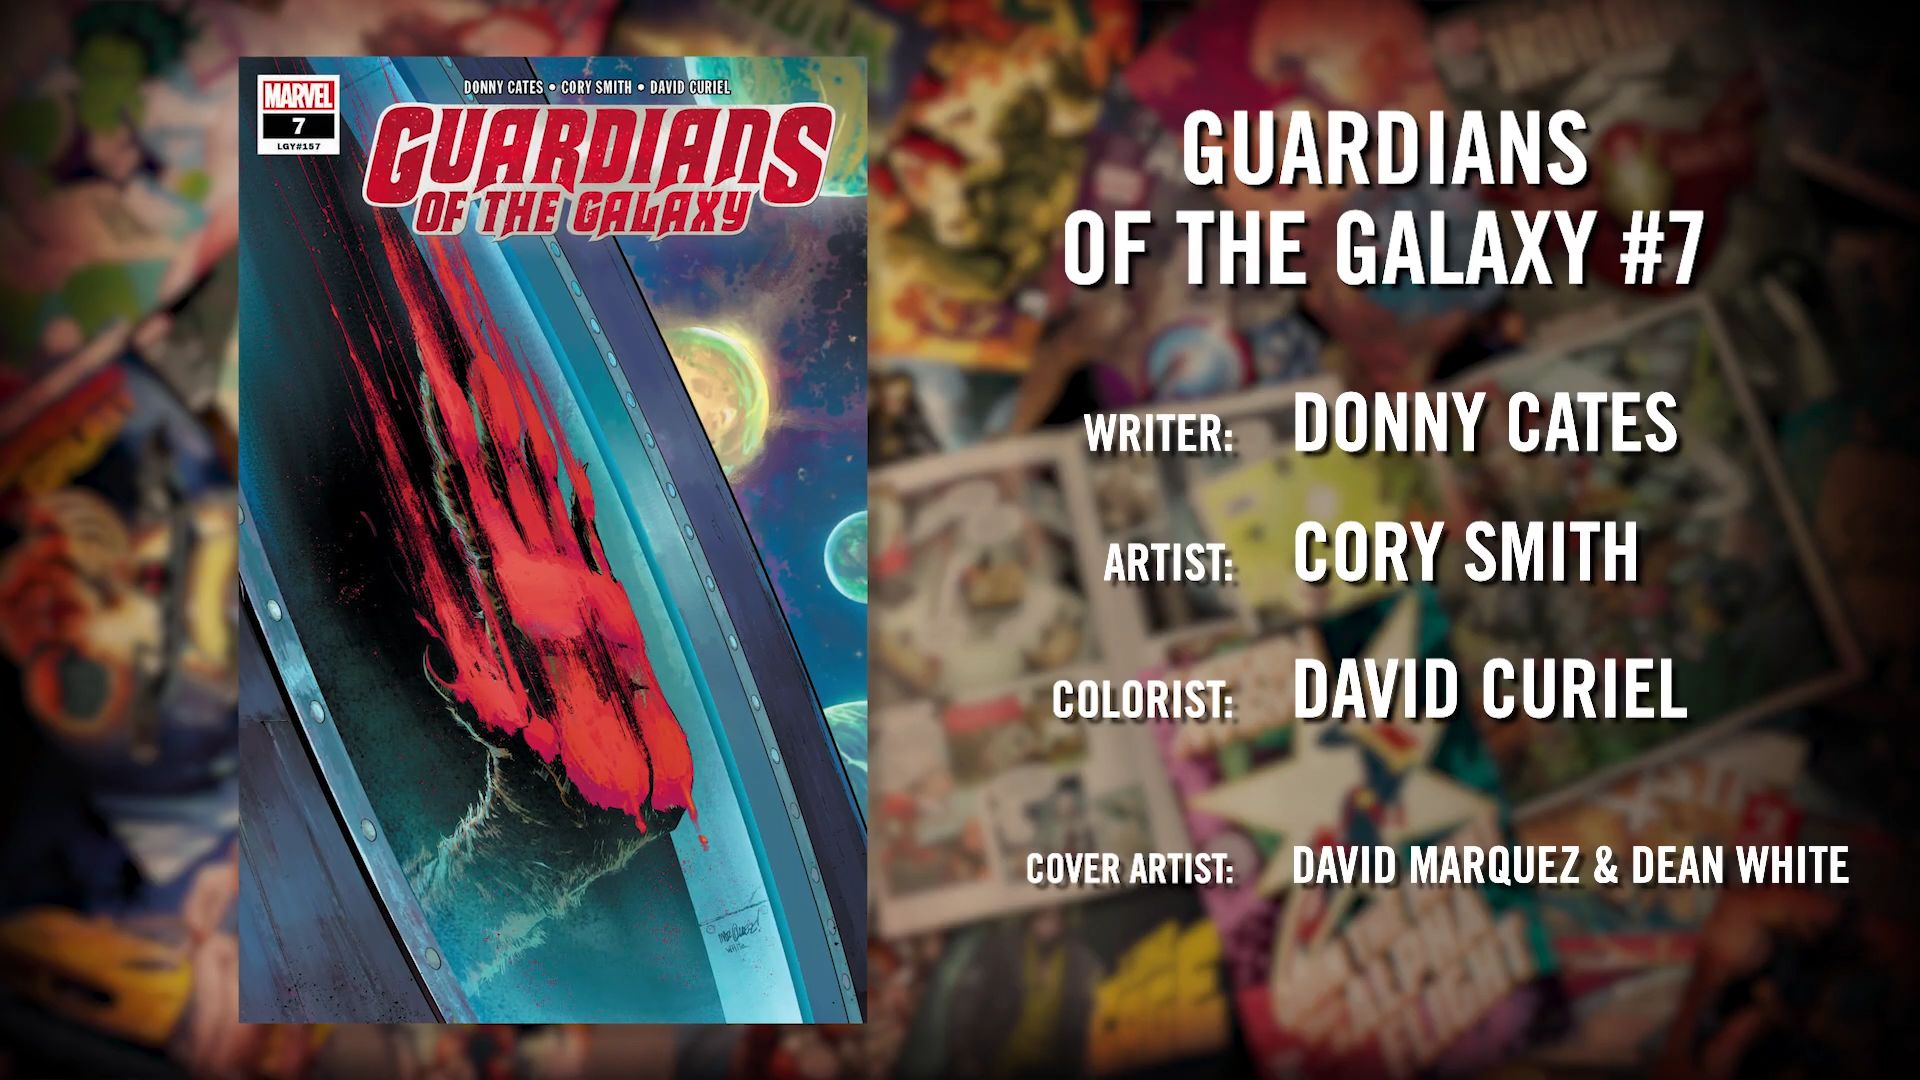 The Death Of Rocket Raccoon in Guardians Of The Galaxy? Donny Cates